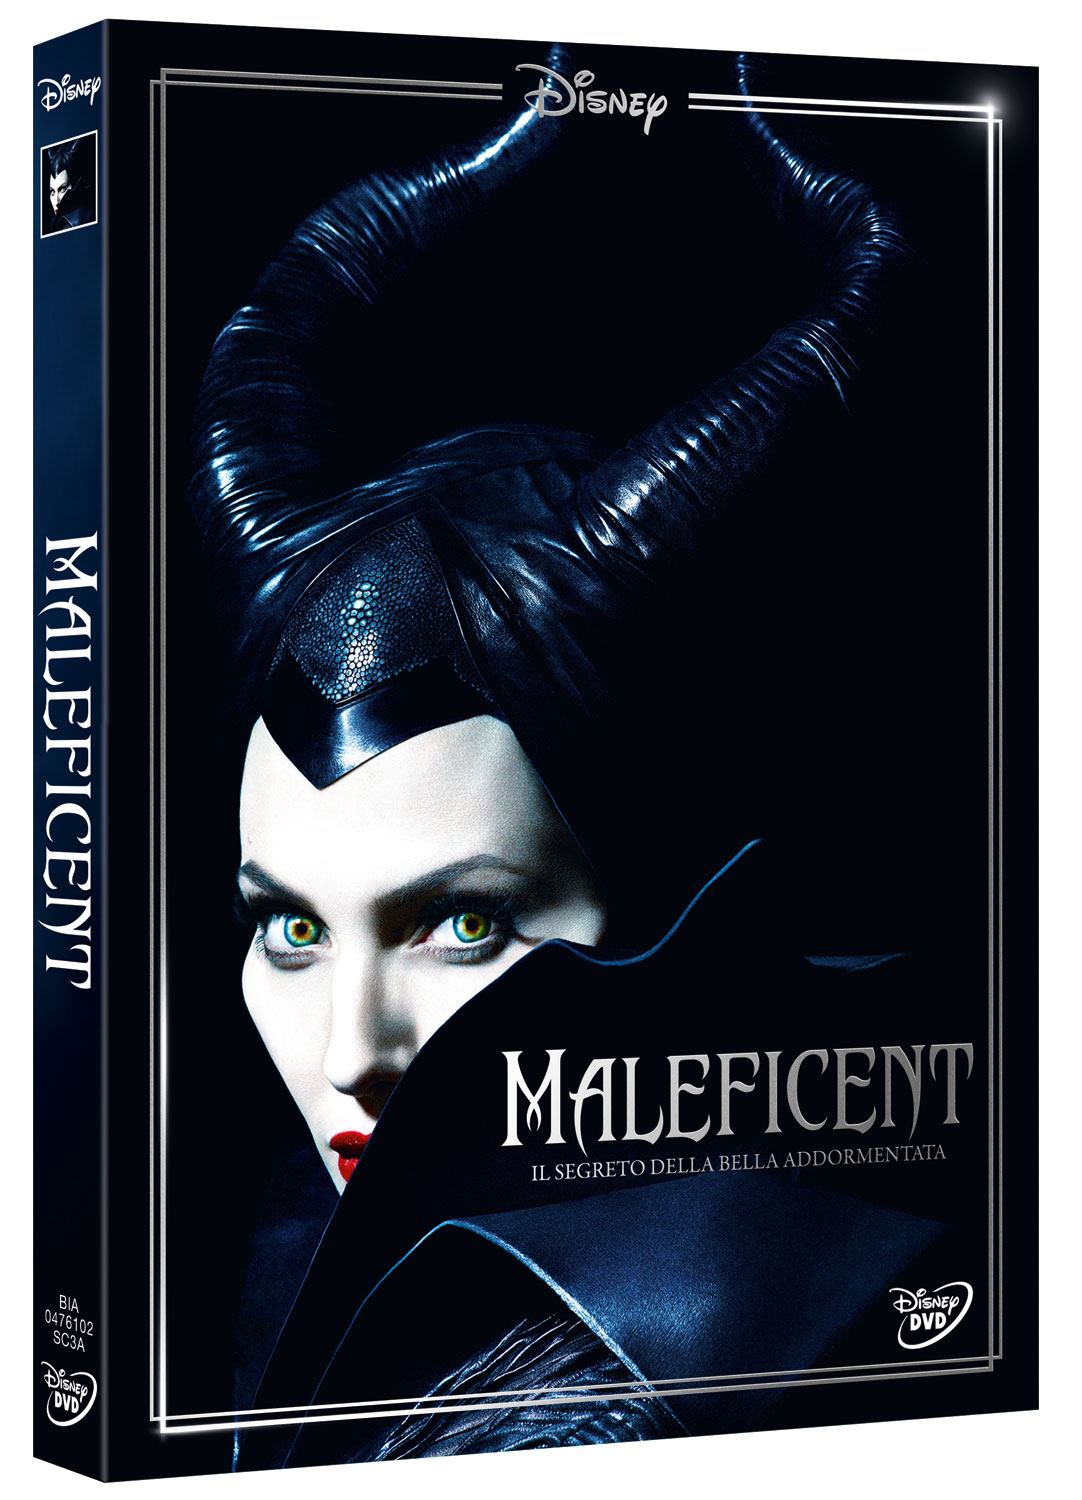 MALEFICENT (NEW EDITION) (DVD)